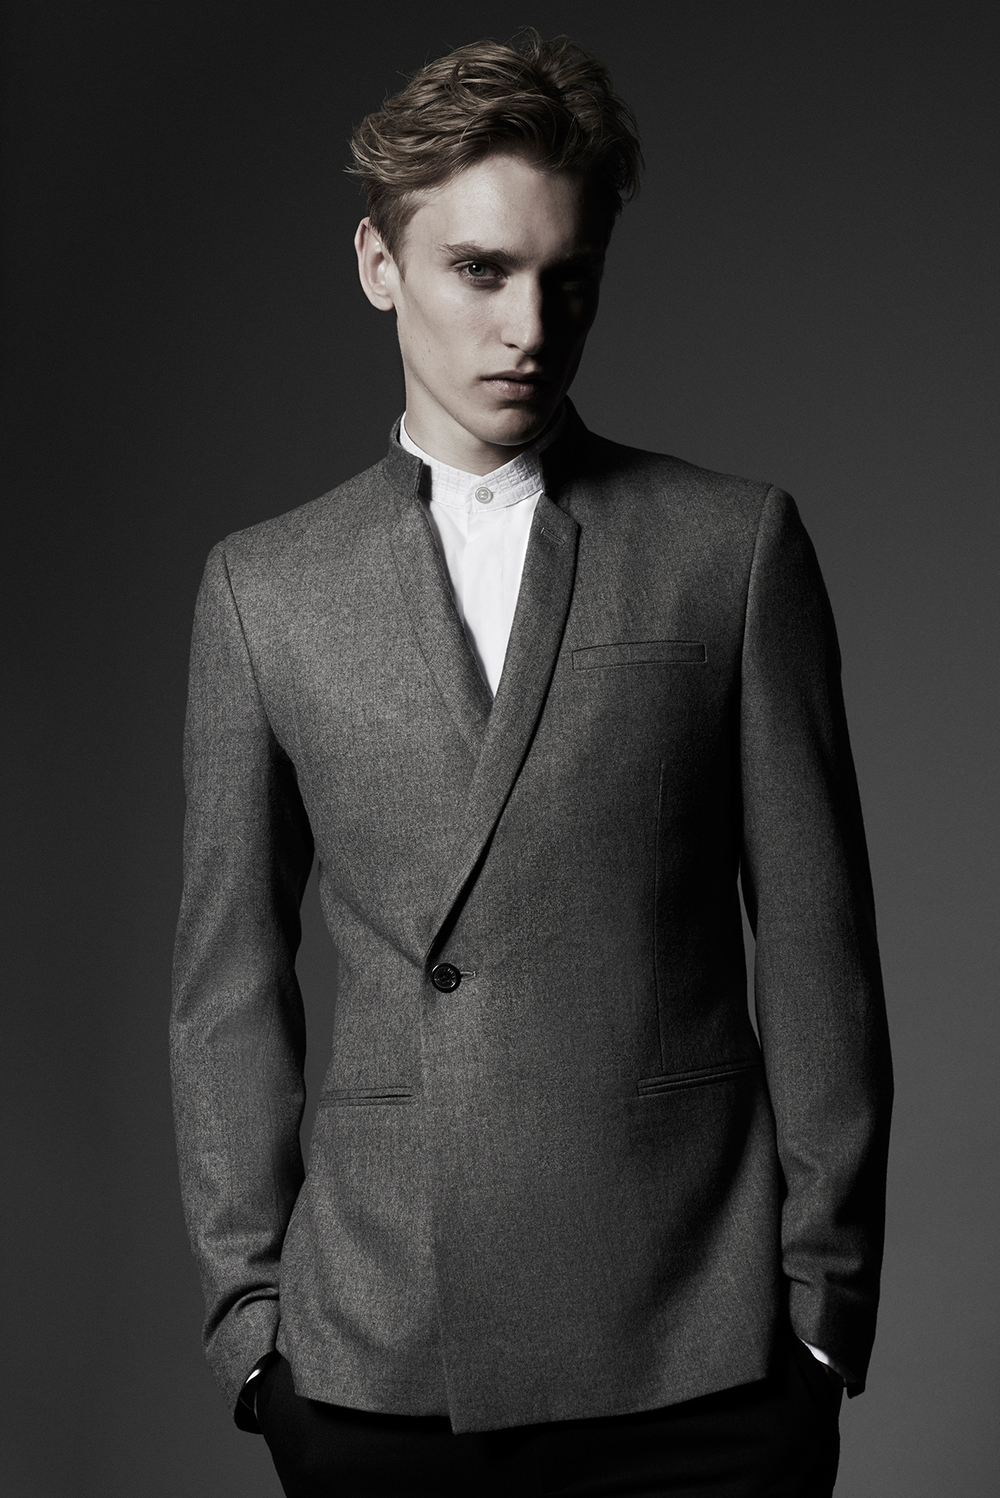 CONTEMPORARY JACKET DOUBLE BREASTED Colours: Grey 100% Wool Made In England  BOMBAY SHIRT WITH EMBROIDERED COLLAR Colours: White 100% Cotton Made In Italy